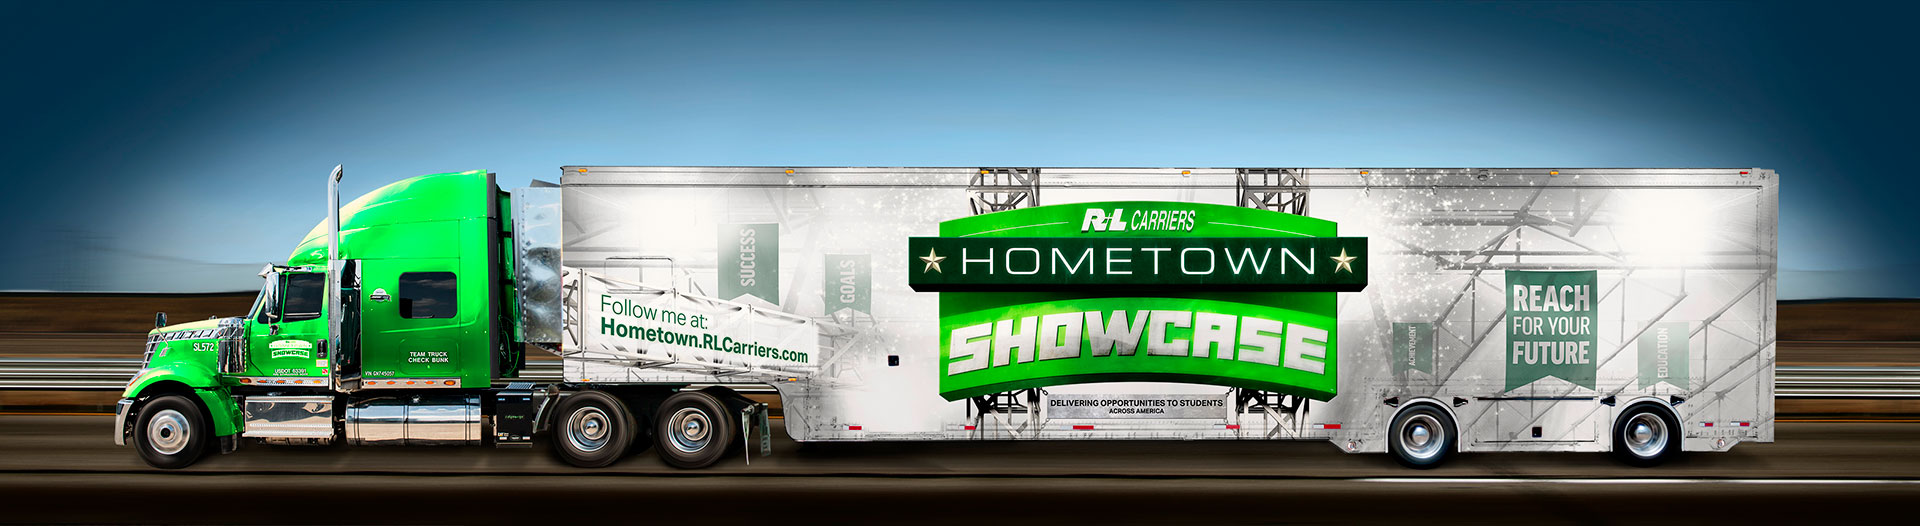 R+L Carriers, Hometown Showcase Hauler